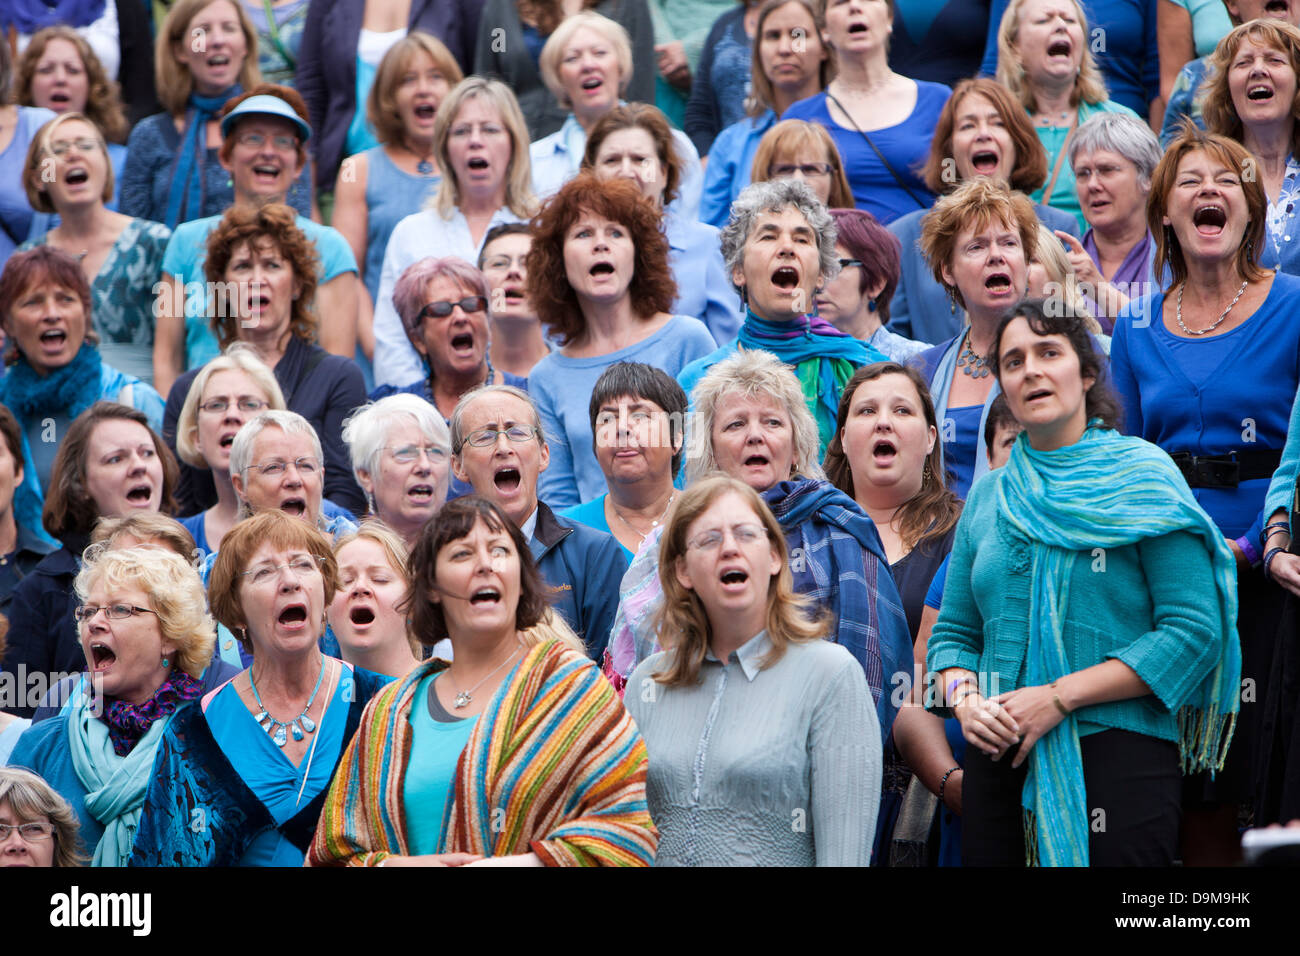 An 800 voice choir singing for water in front of the City Hall, Thames Festival, London, UK - Stock Image